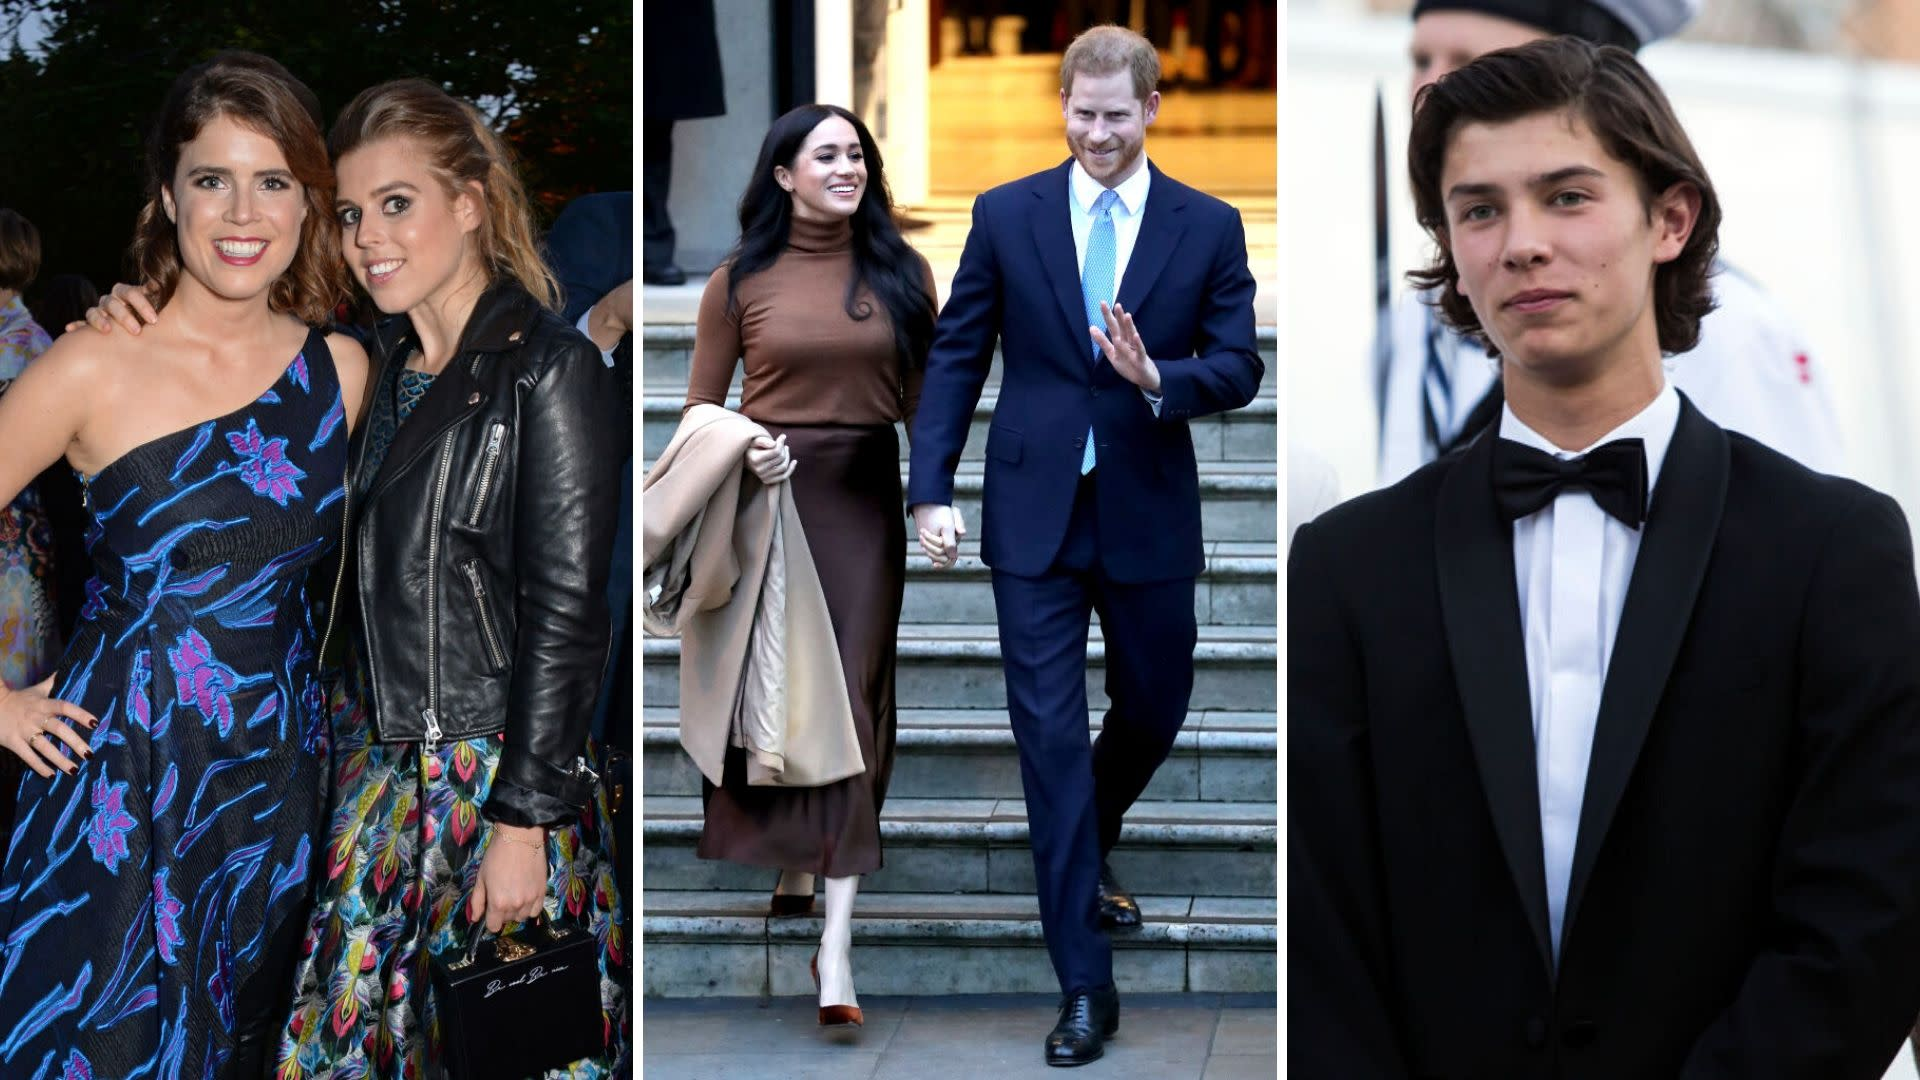 Royals with jobs: What do the world's working royals do?